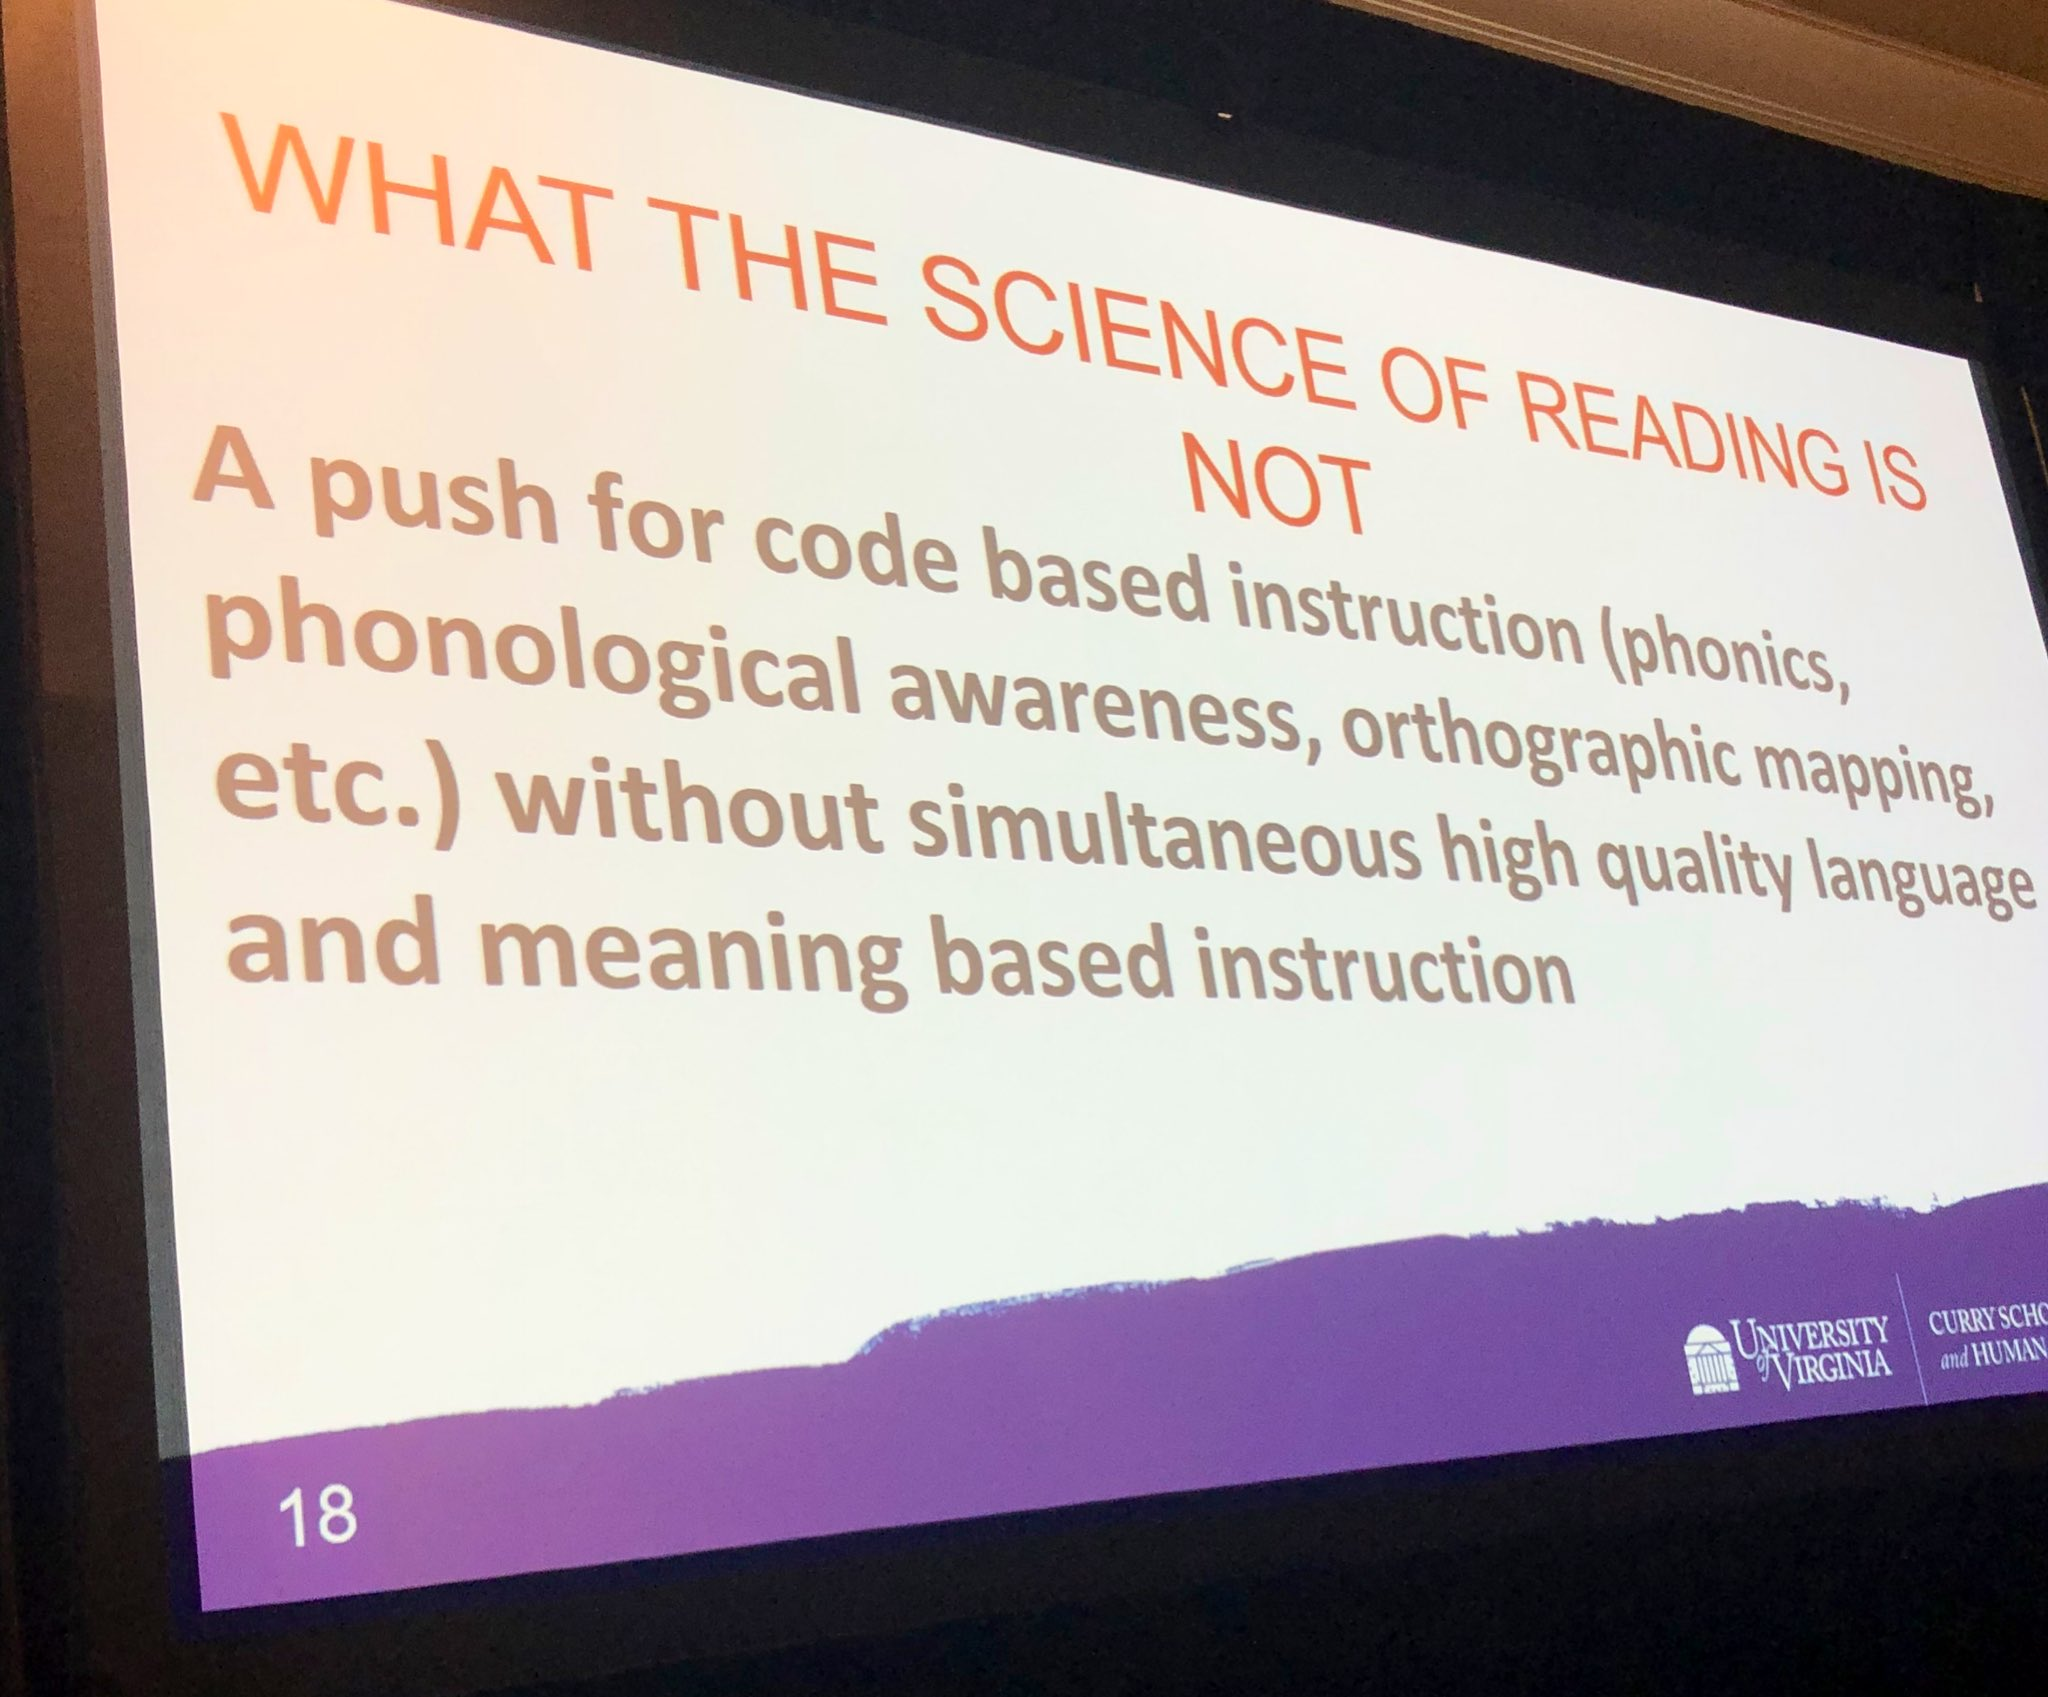 What the Science of Reading is not